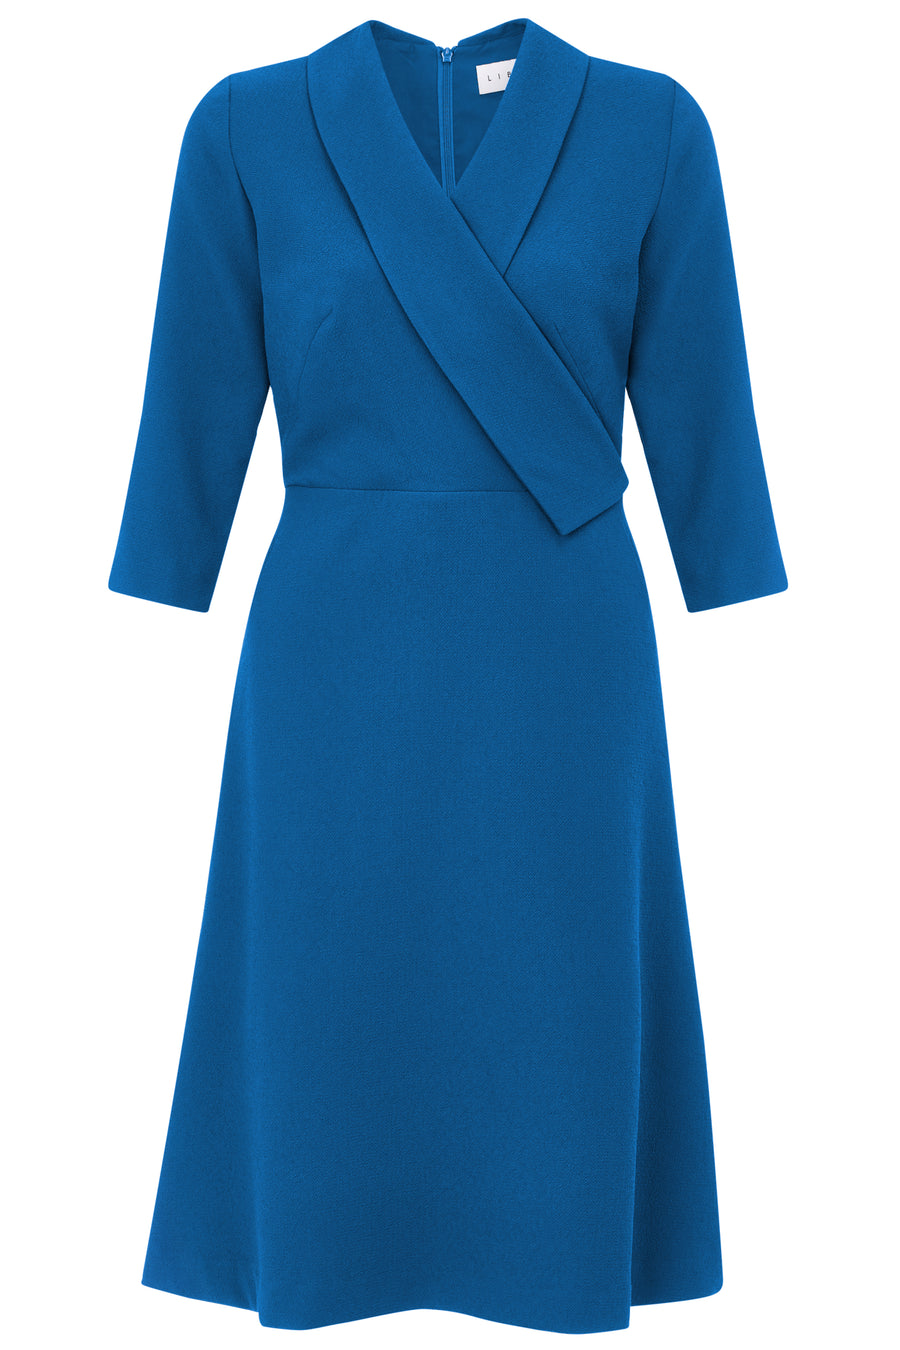 Farringdon Cobalt Dress